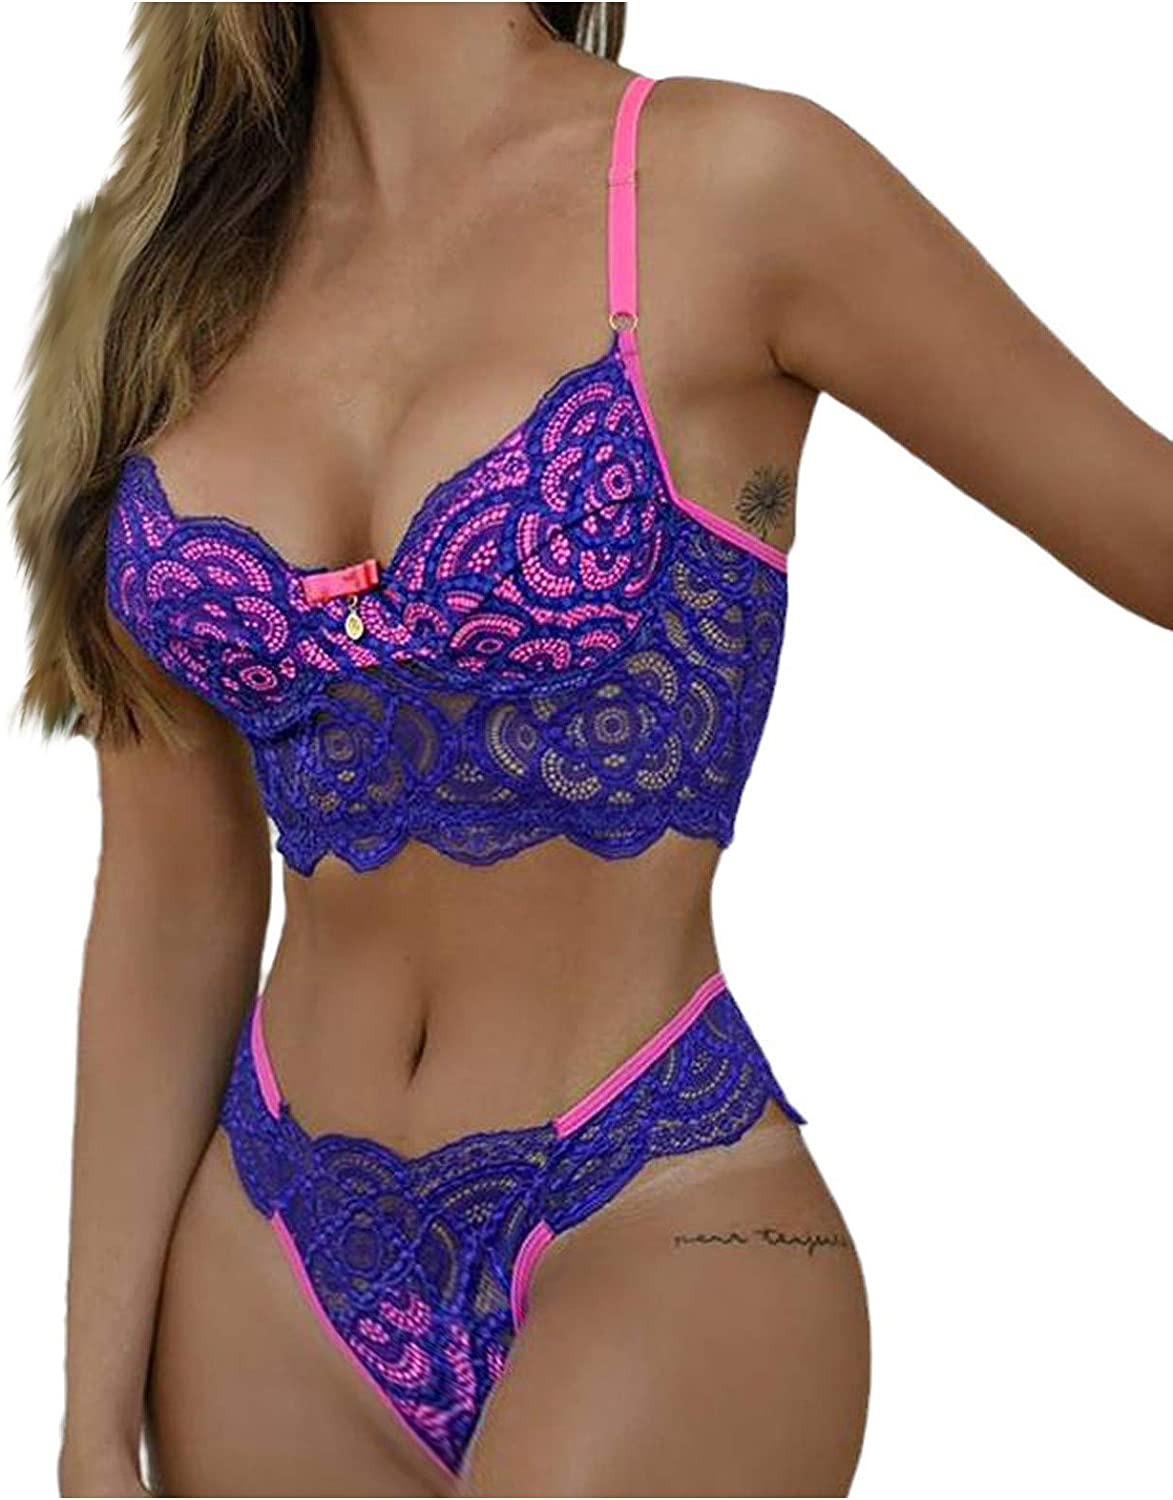 VonVonCo Sexy Lingerie for Women Ladies Fashion Two Piece Underwear Thong Bra Set Color Matching Embroidery Sexy Lingerie